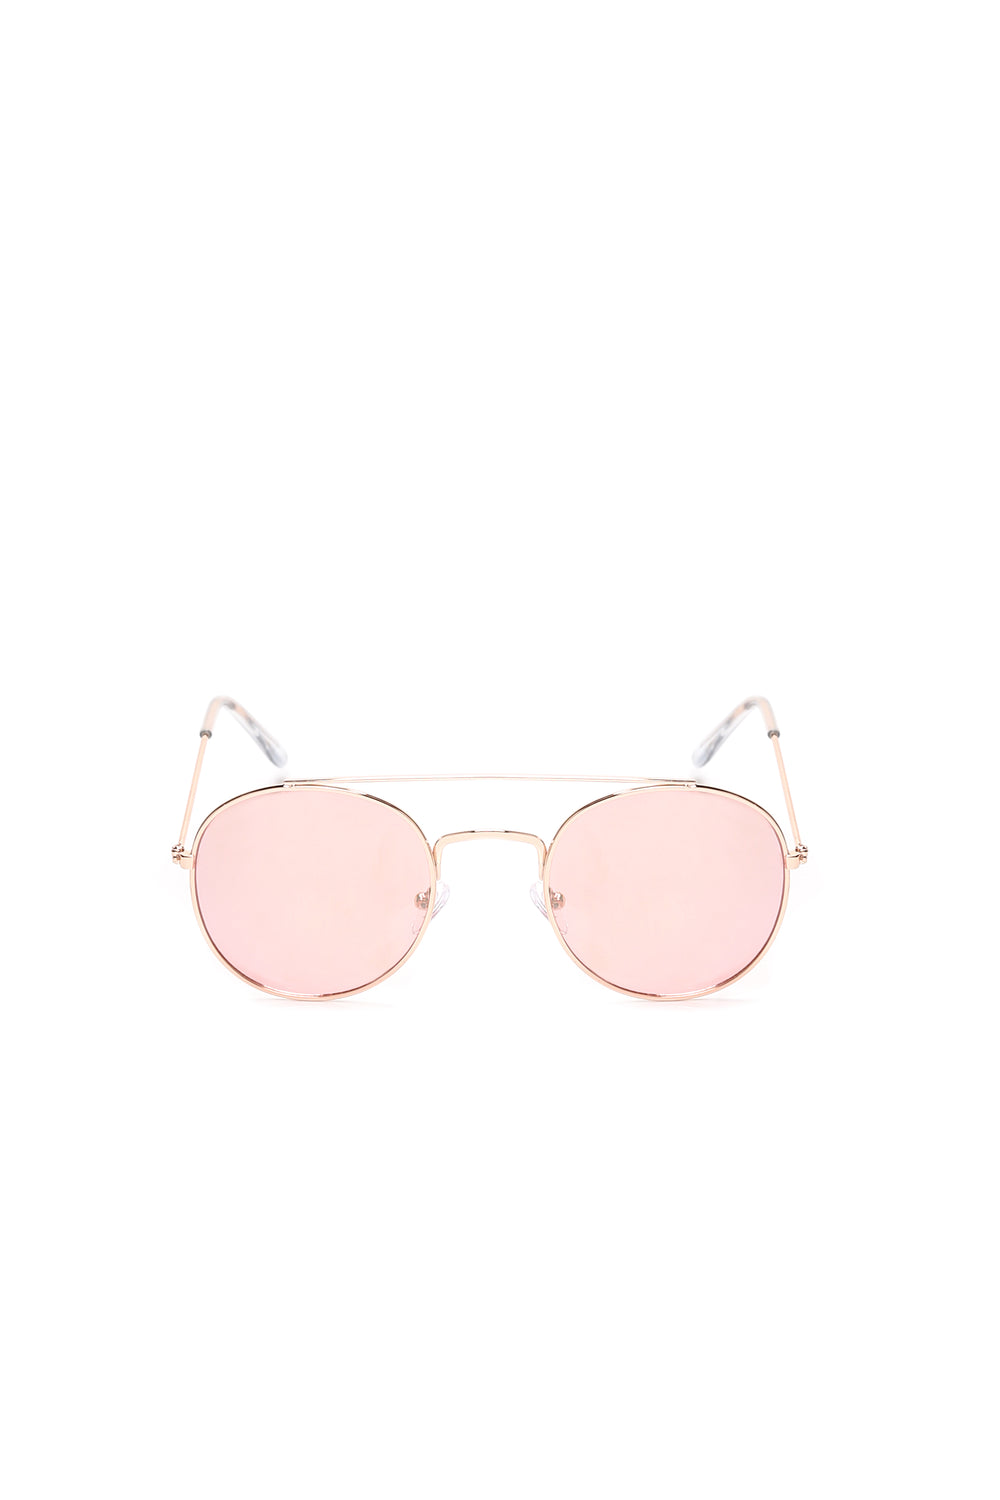 Common Love Sunglasses - Gold